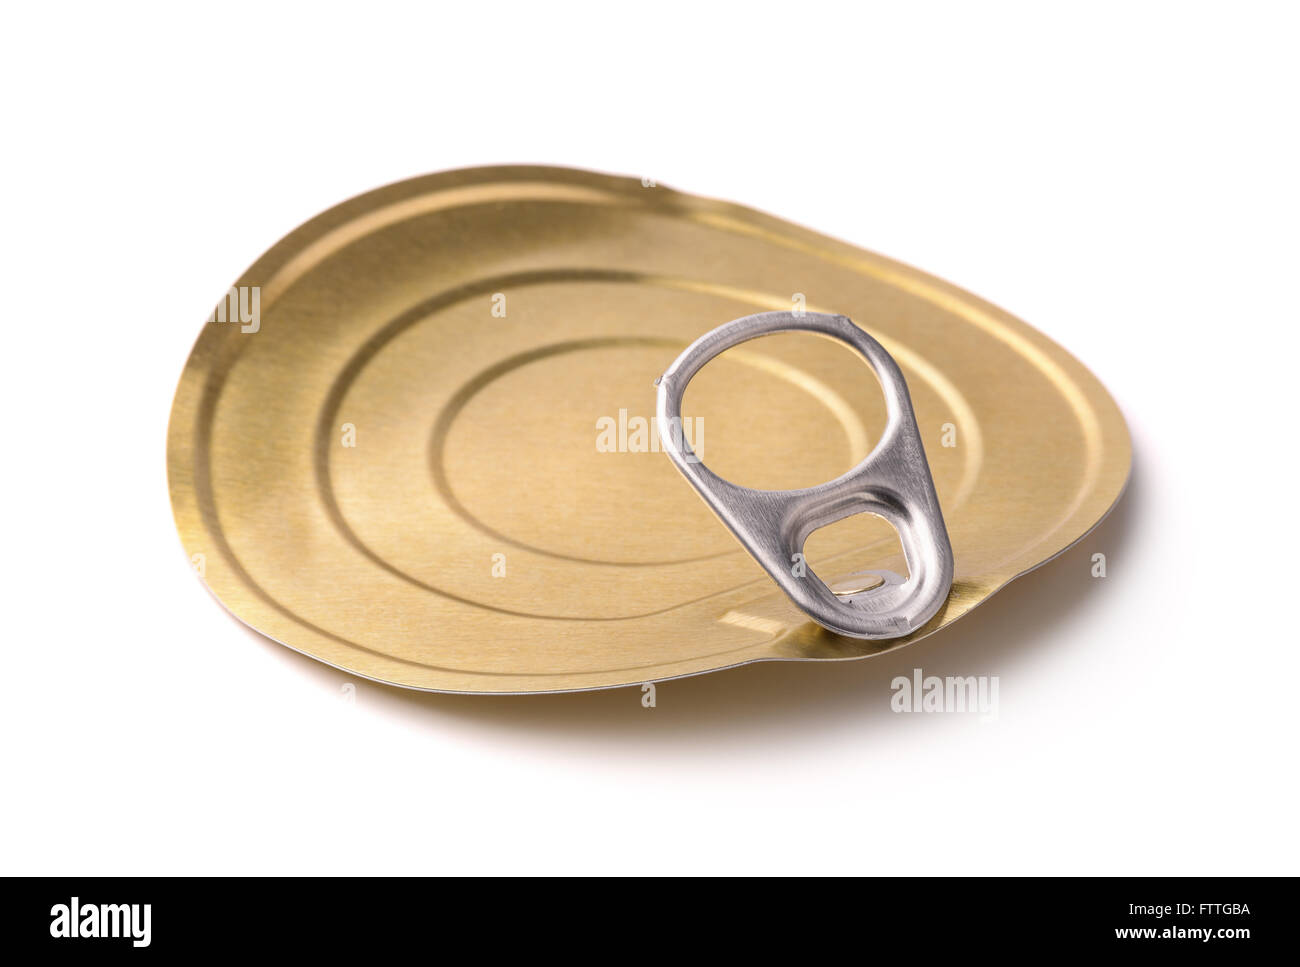 Tin can lid - Stock Image